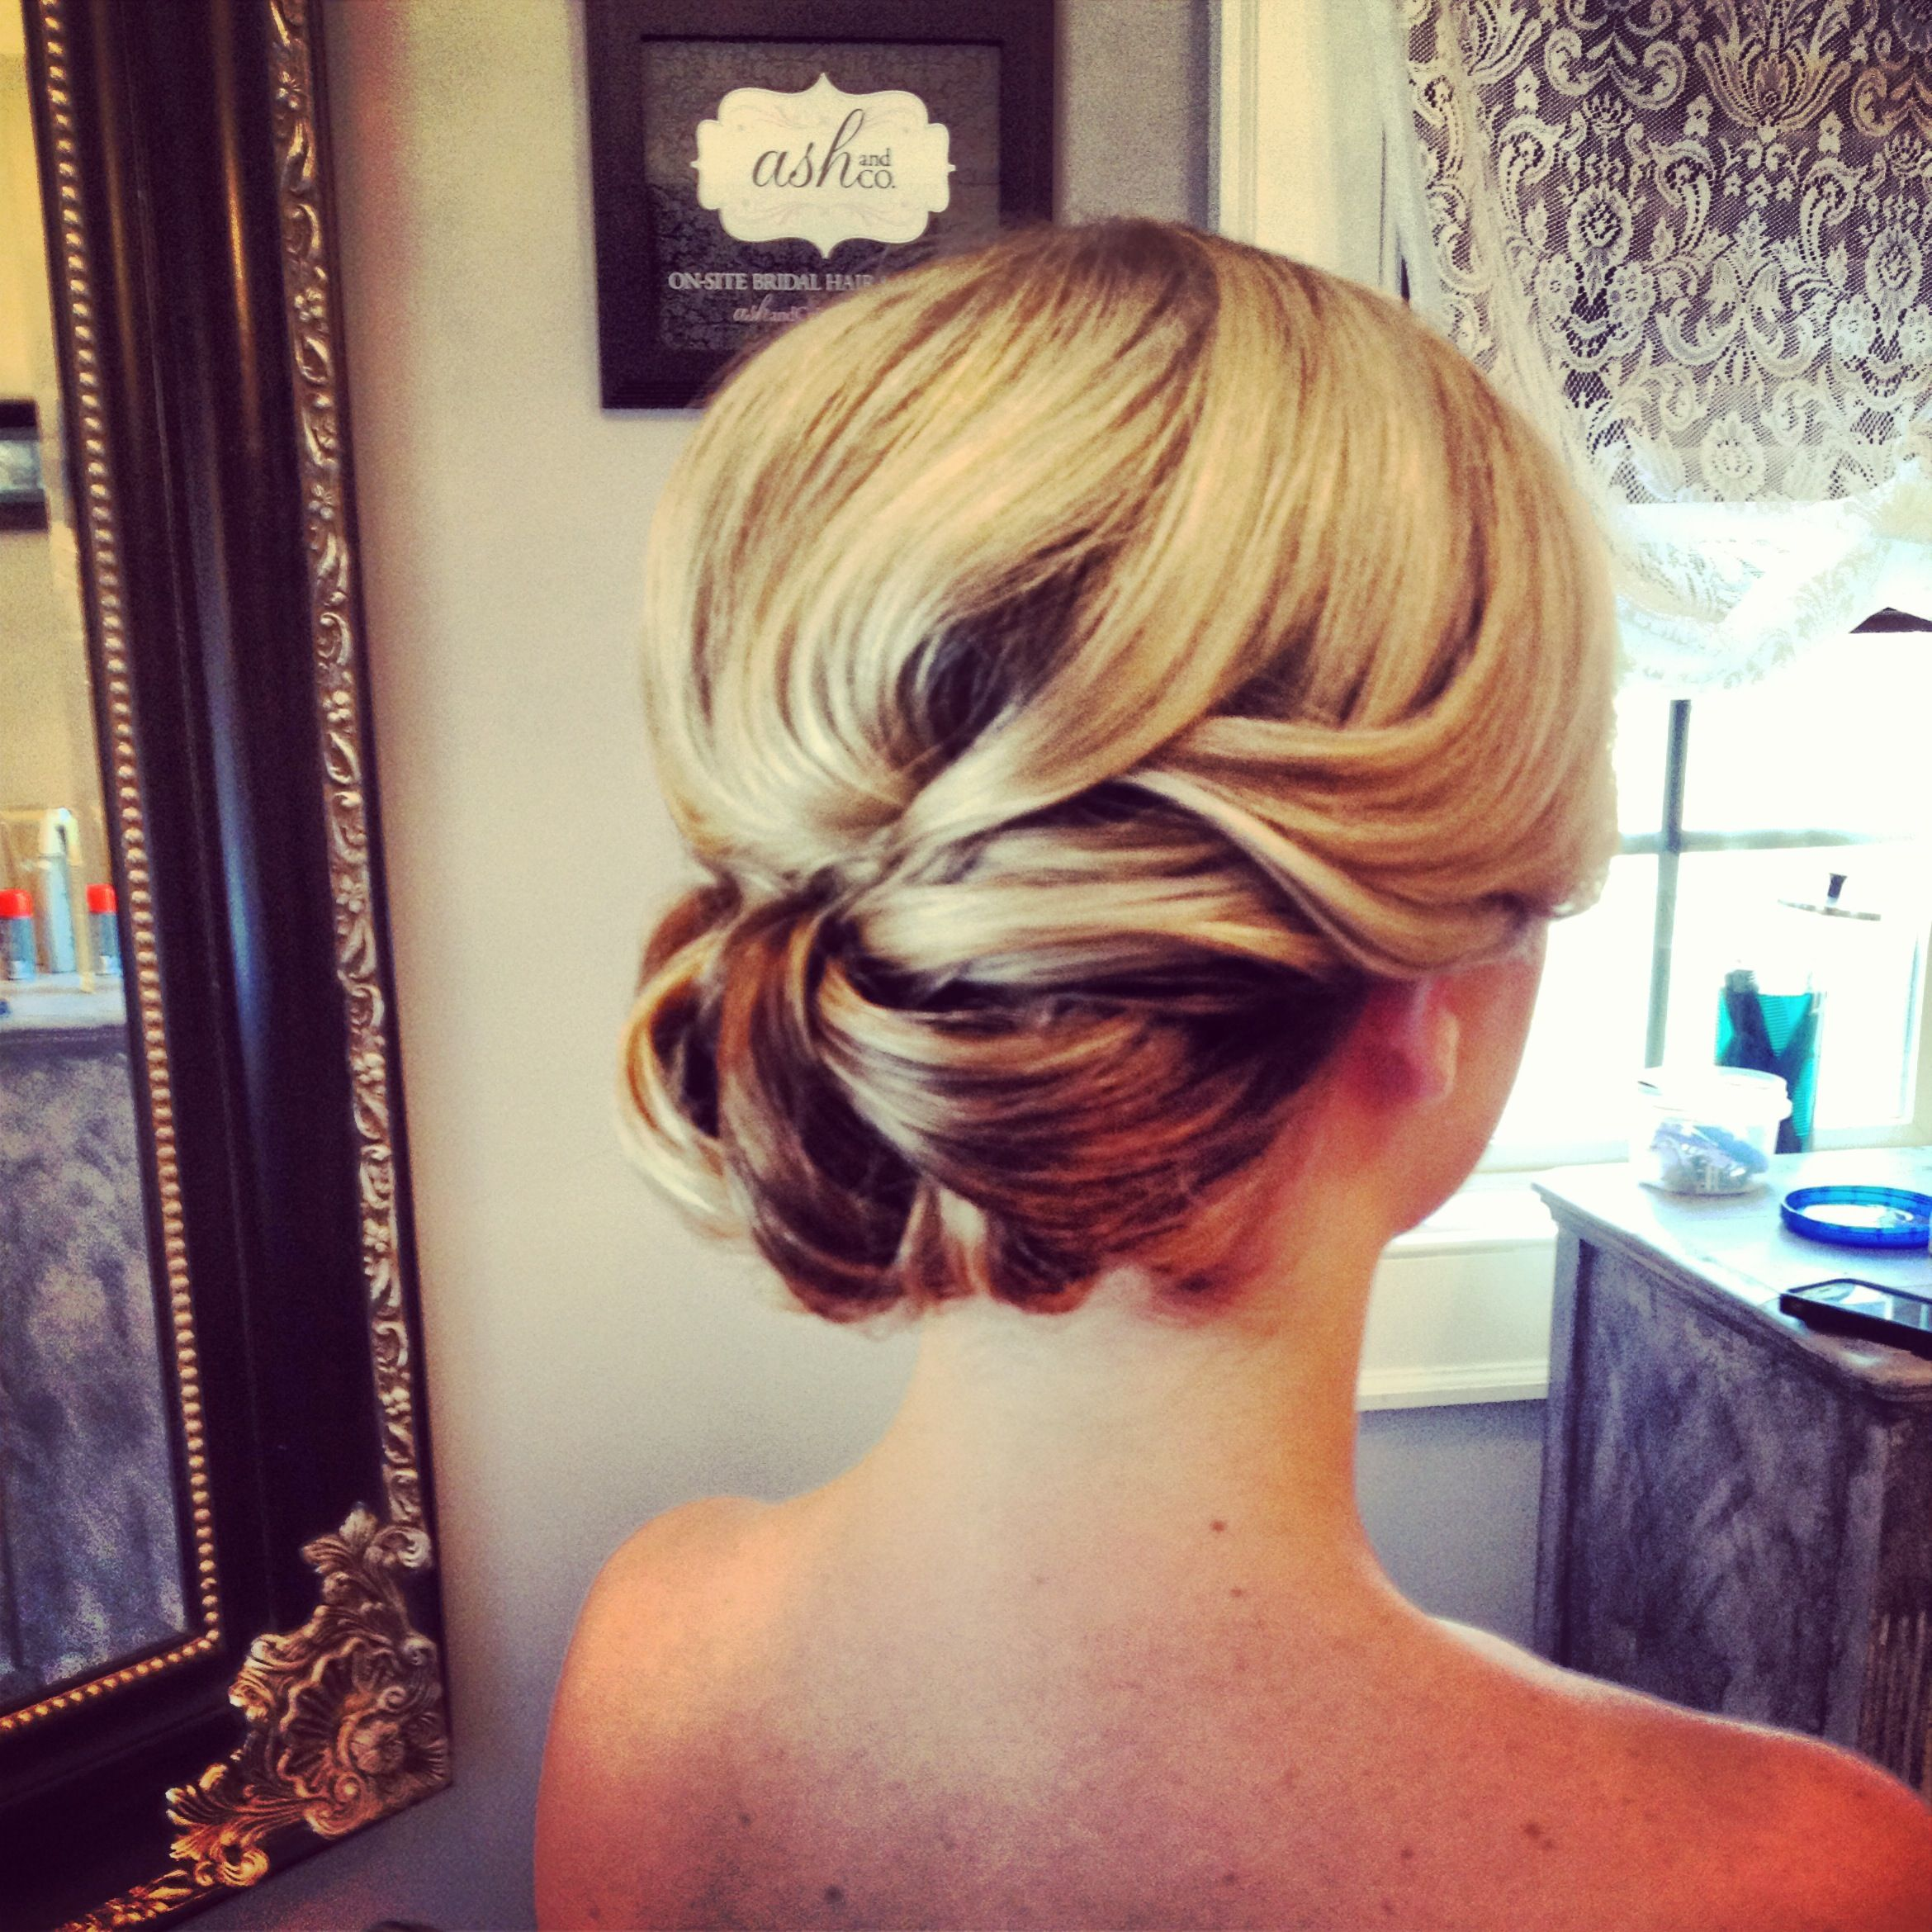 Classic Chignon Wedding Hairstyles: Classic Wedding Hair, Chignon, Bridal Hair, Ash And Co